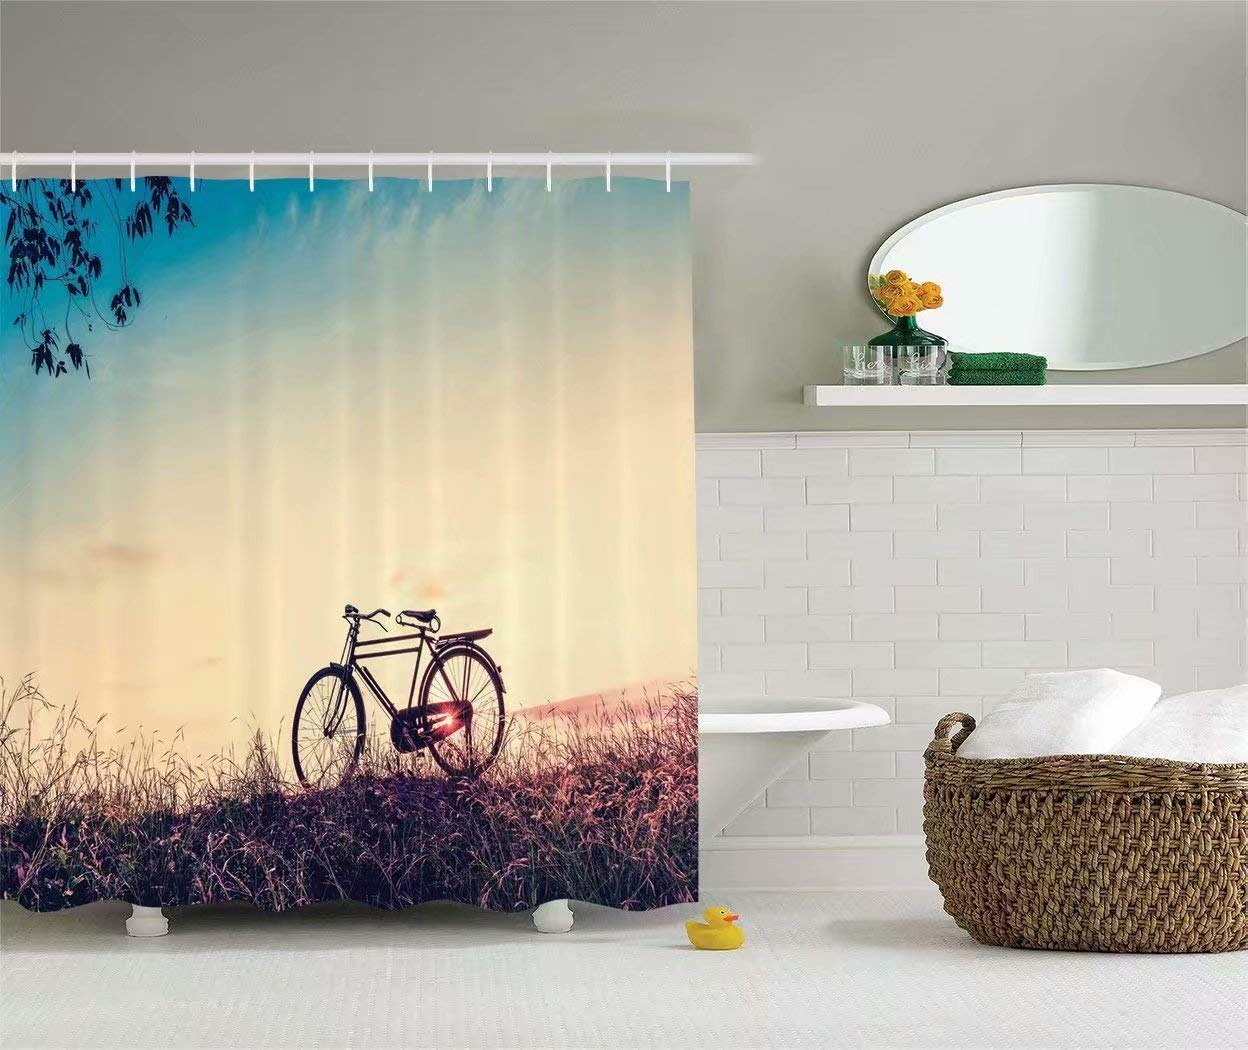 KANATSIU Retro Filter Sunset Bicycle in Pastel Tones Mountain Bike Theme Shower Curtain 12 Plactic Hooks,100% Made Polyester,Mildew Resistant & Machine Washable,Width x Height is 72X72